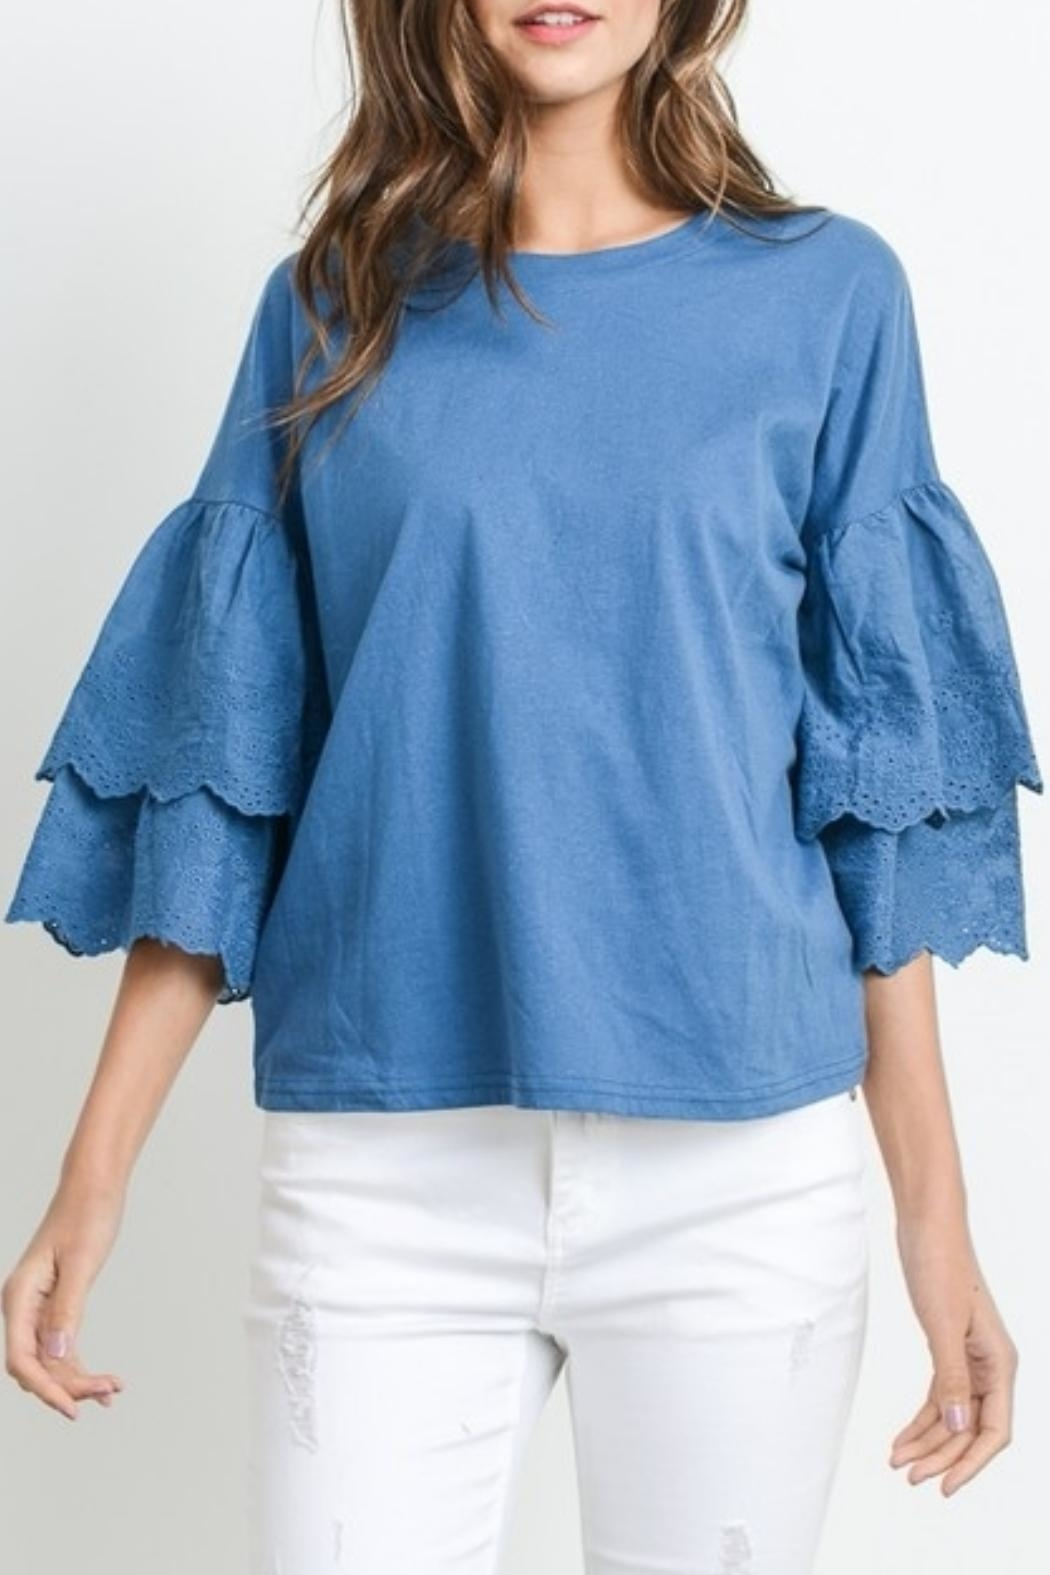 Le Lis Embroidered Sleeve Tee - Front Full Image